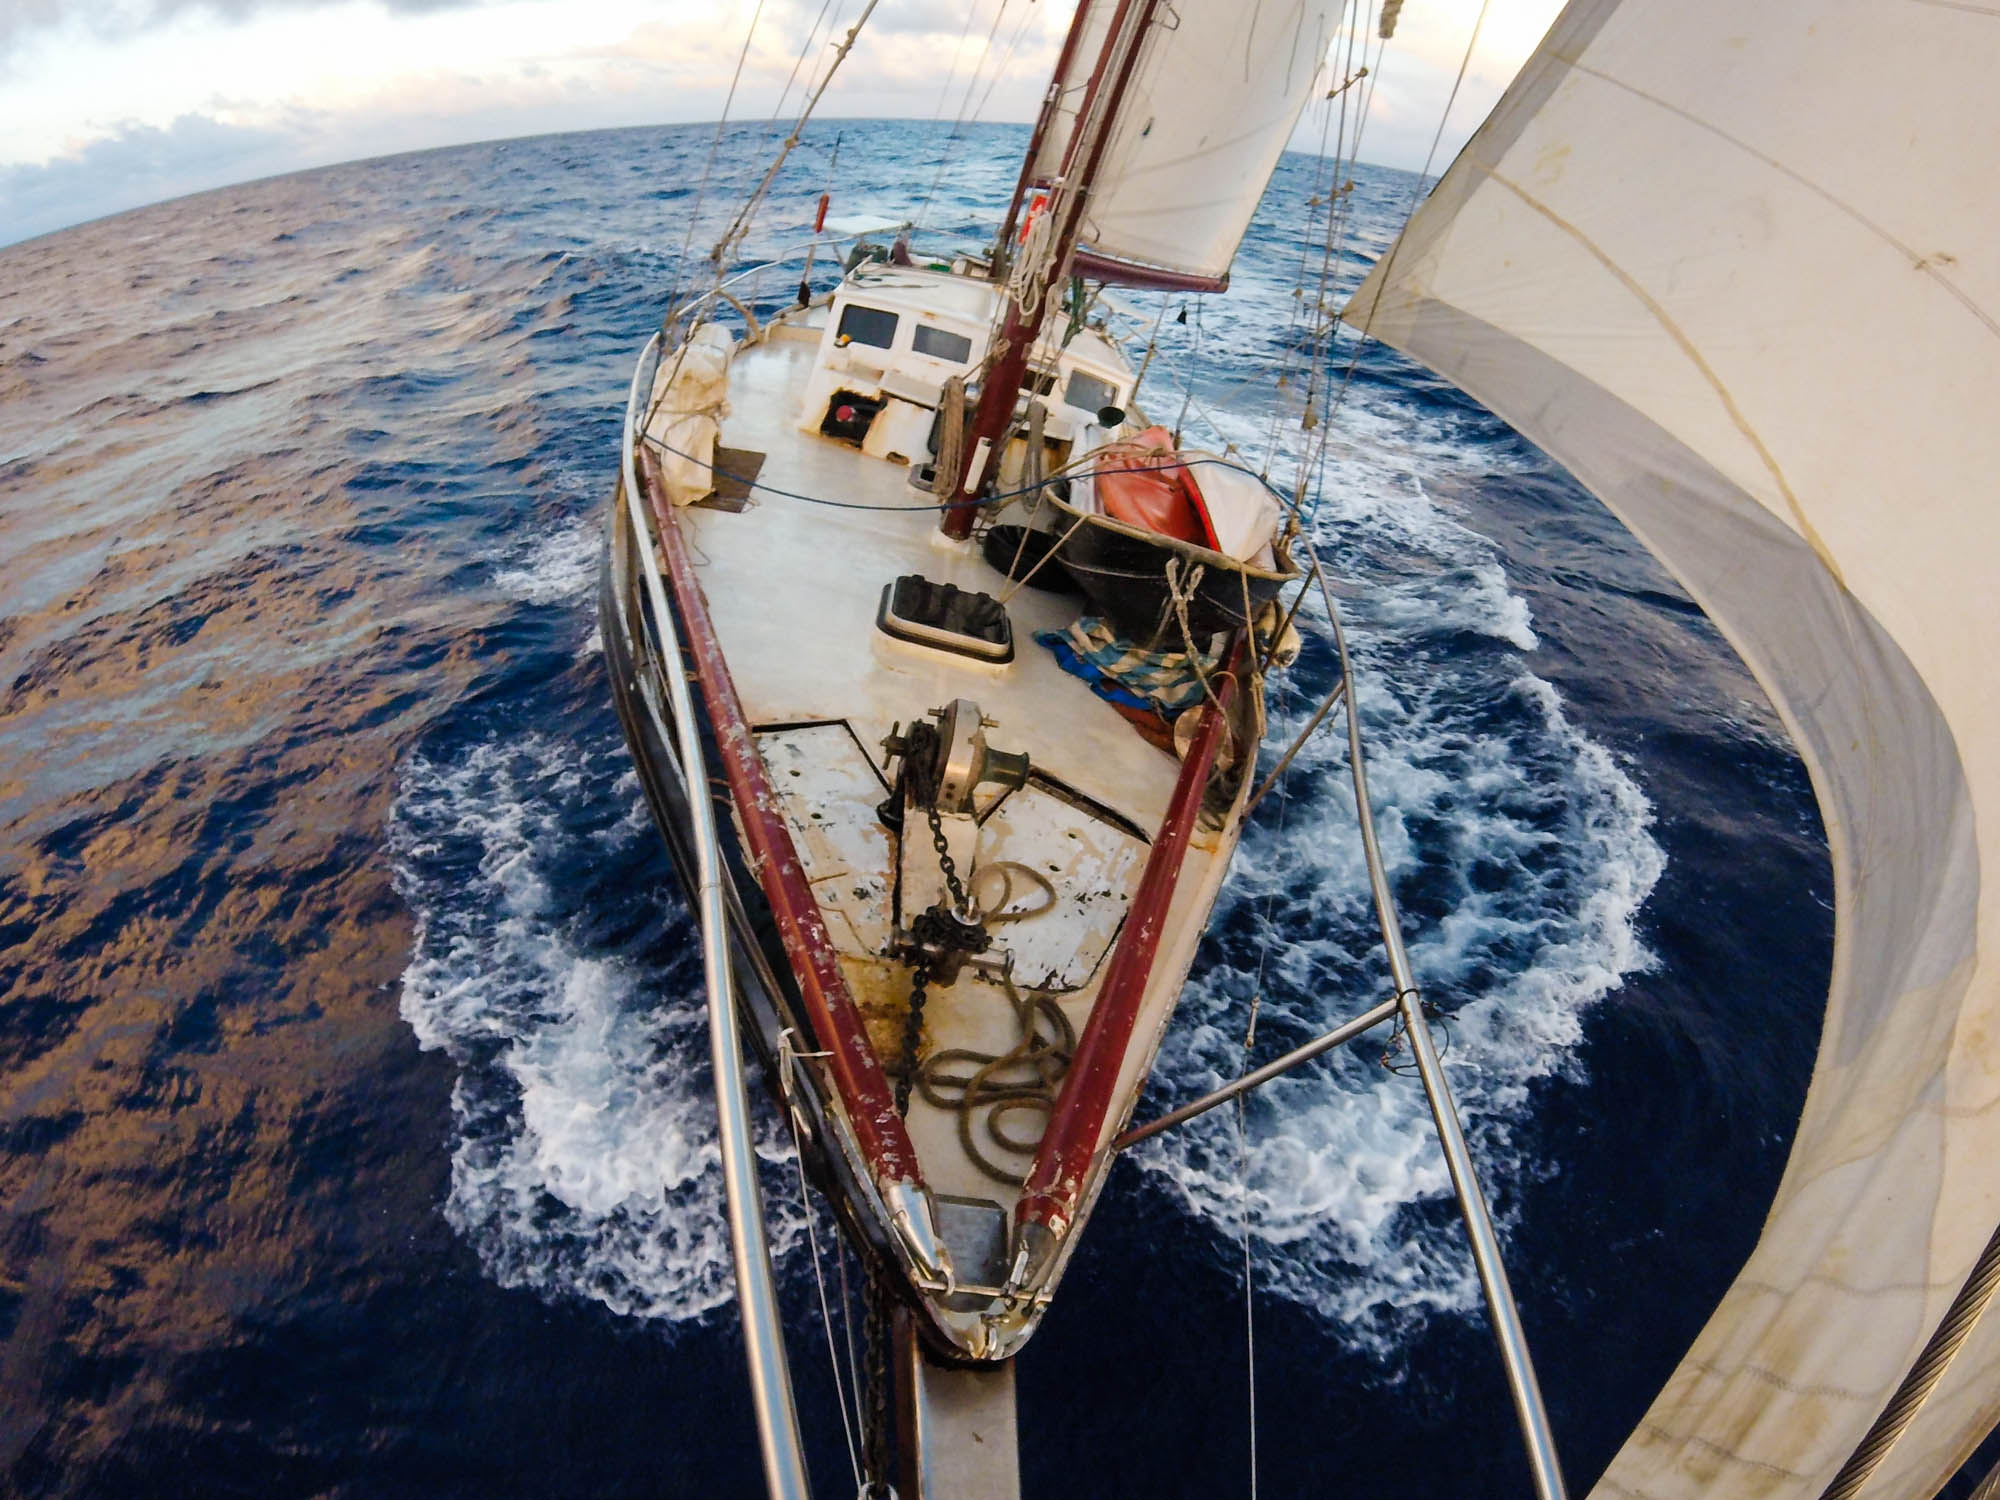 My home on the 53 foot steel ketch KARAKA as I sailed as crew through the Marshall Islands and beyond.